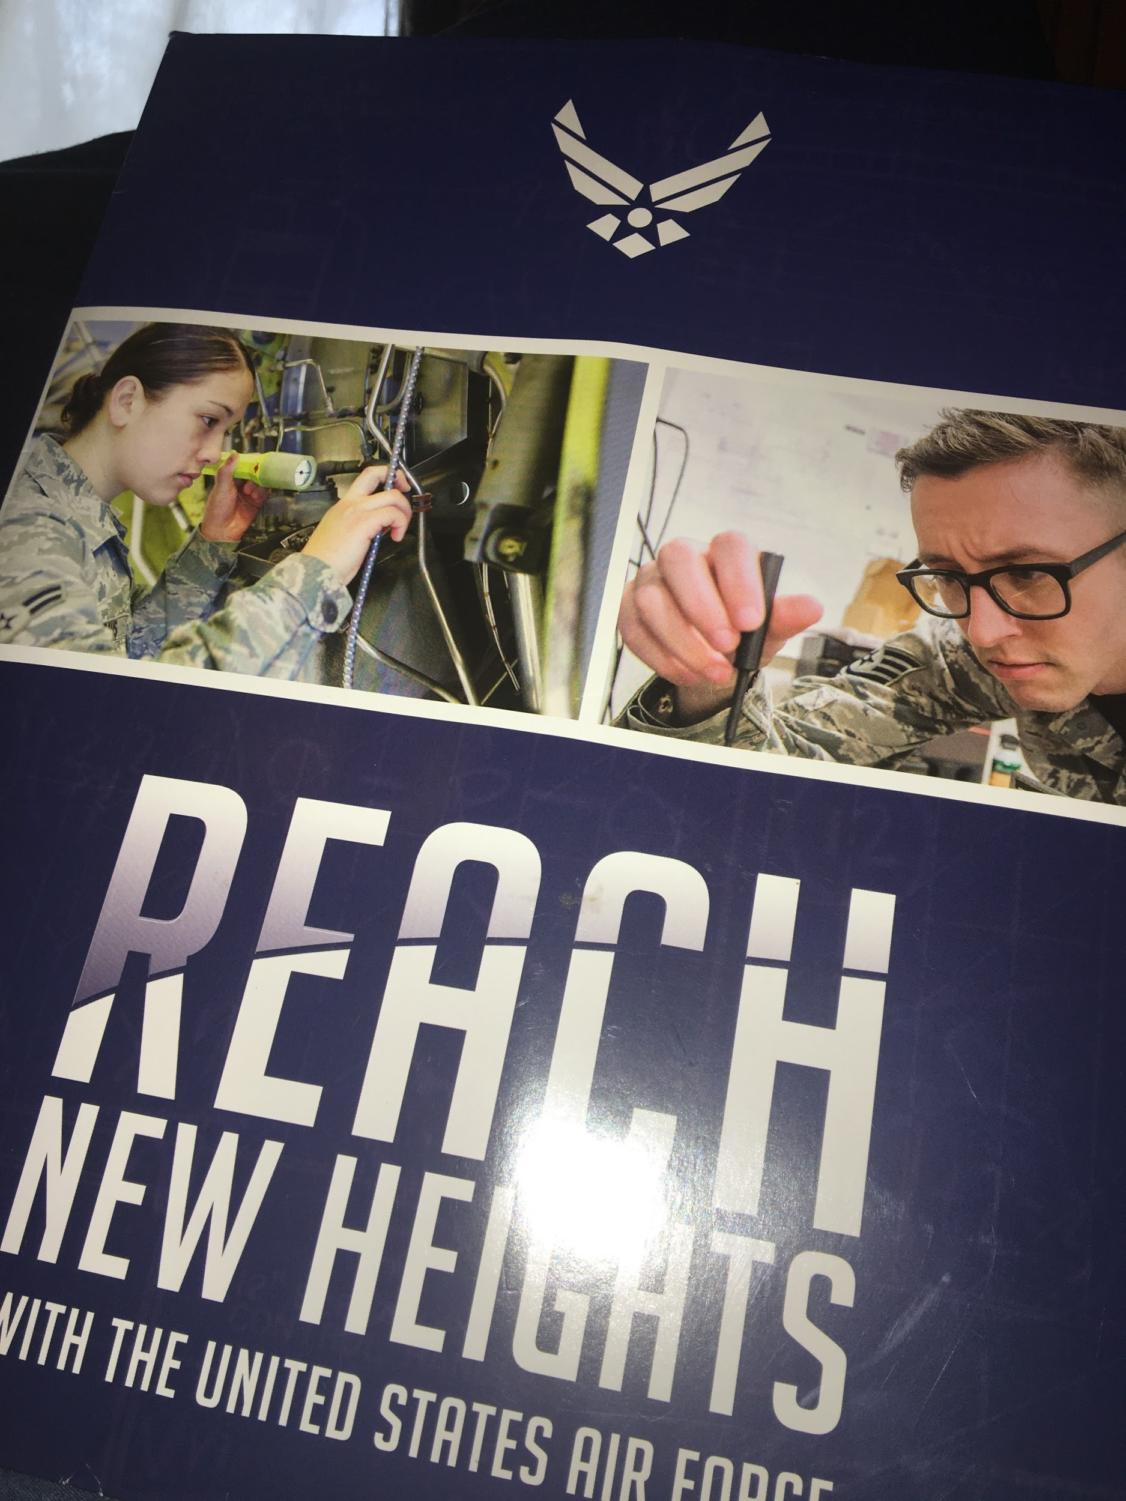 The Air Force recruitment office offers many materials for those who want to find out more about what they have to offer.